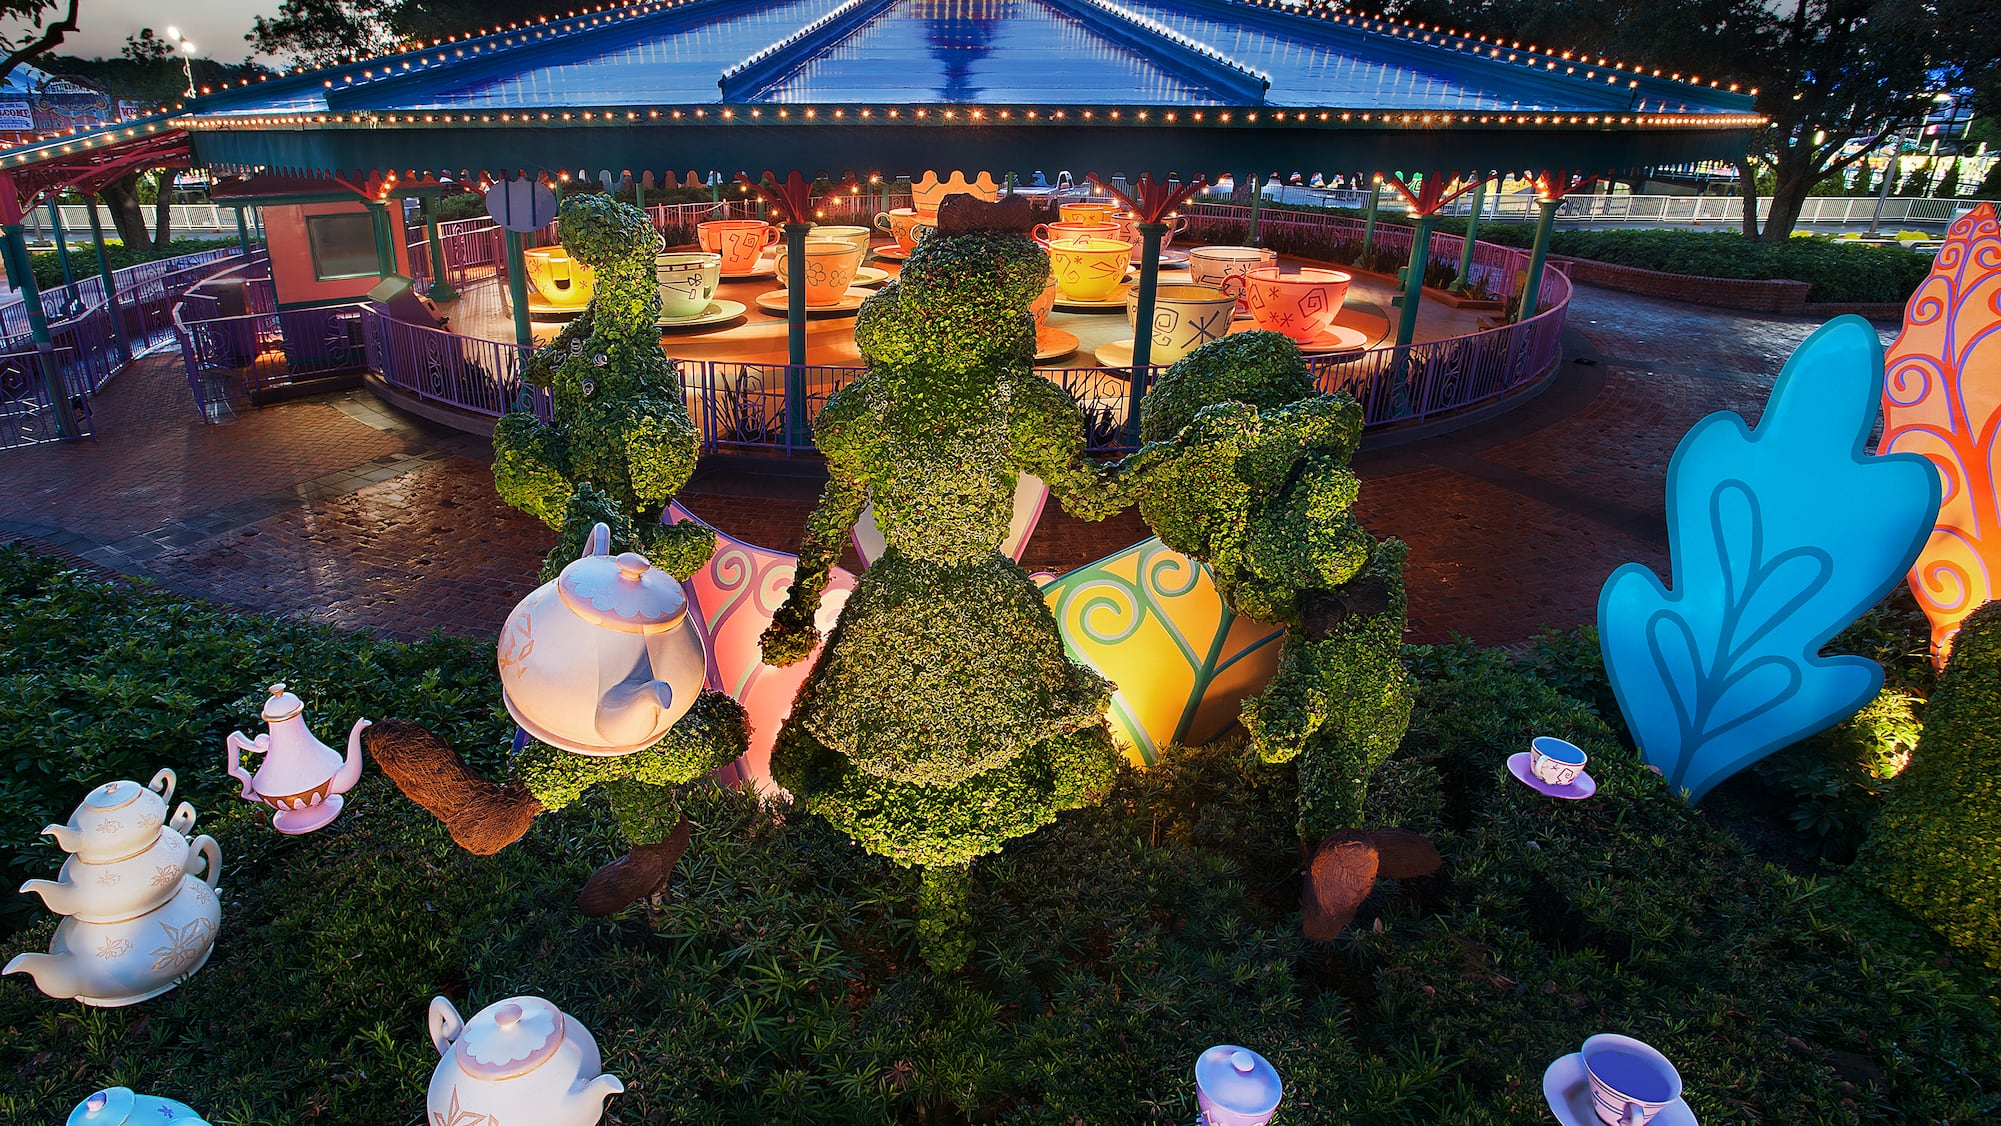 Mad Tea Party | Magic Kingdom Attractions | Walt Disney World Resort